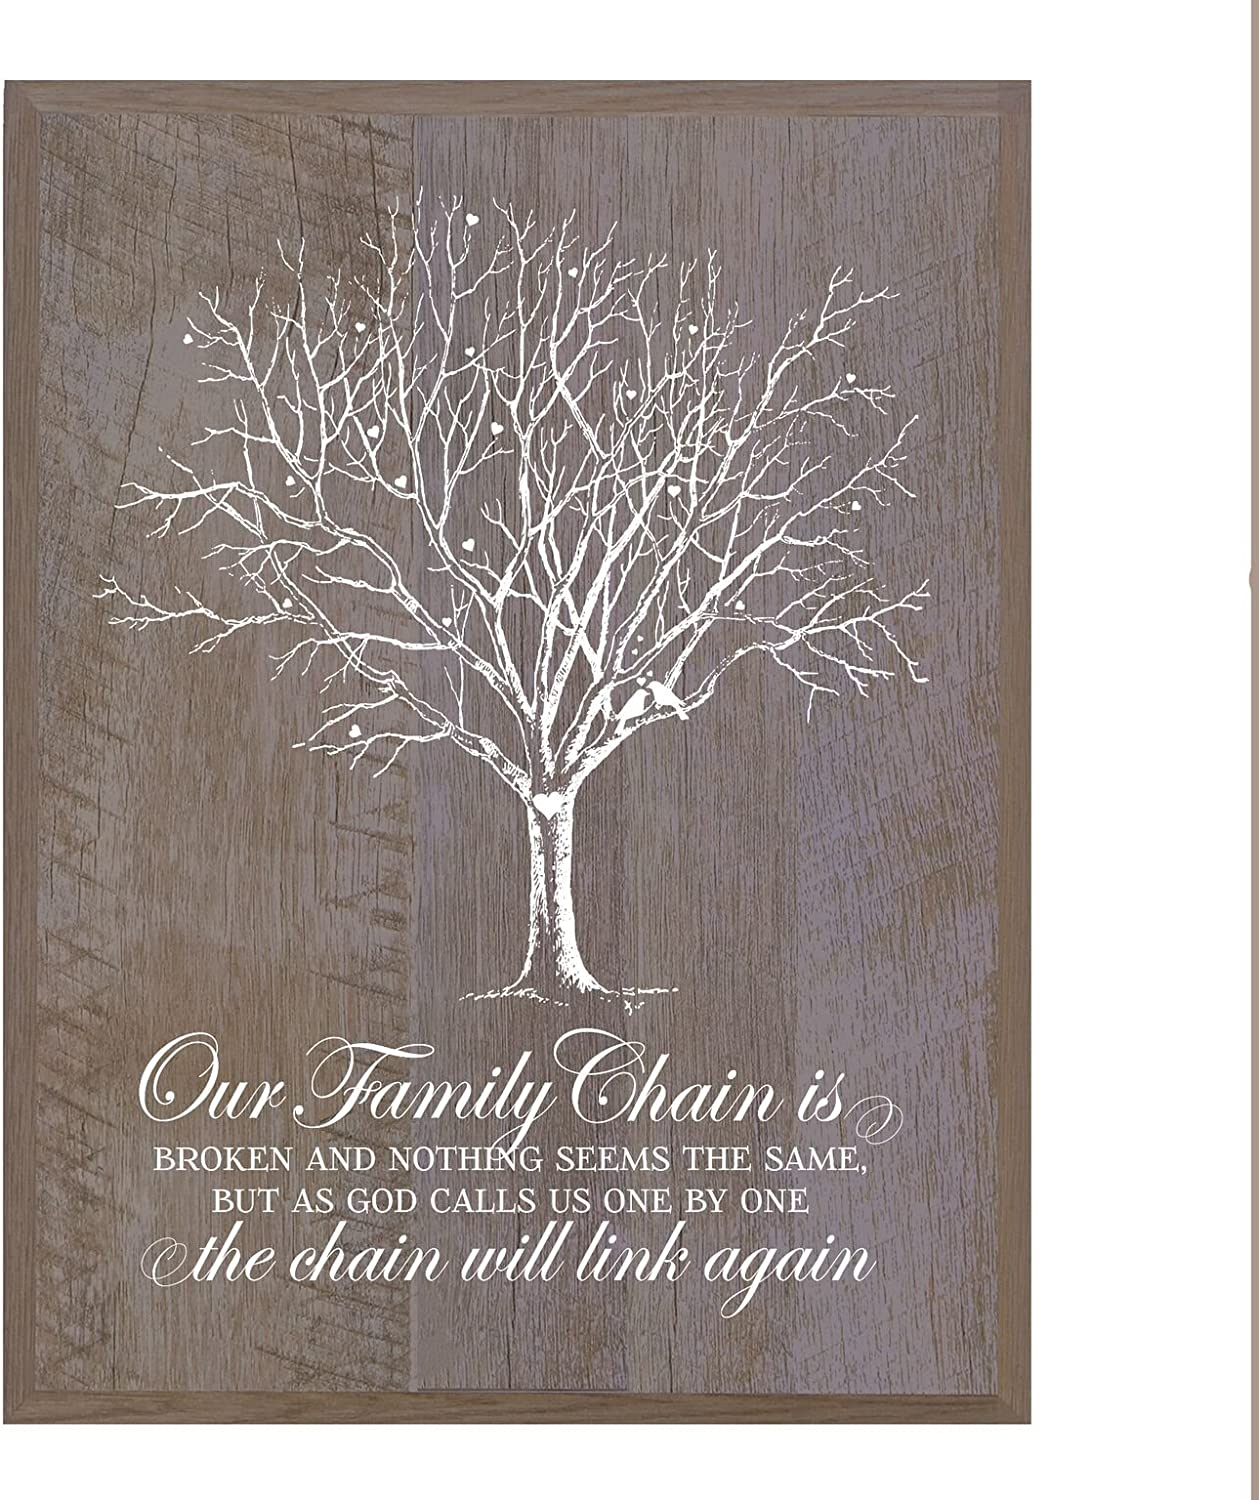 LifeSong Milestones Our Family Chain is Broken Poem Memorial Sympathy Gift for Loss of Loved One Bereavement Gift Wall Plaque Black, 6x8